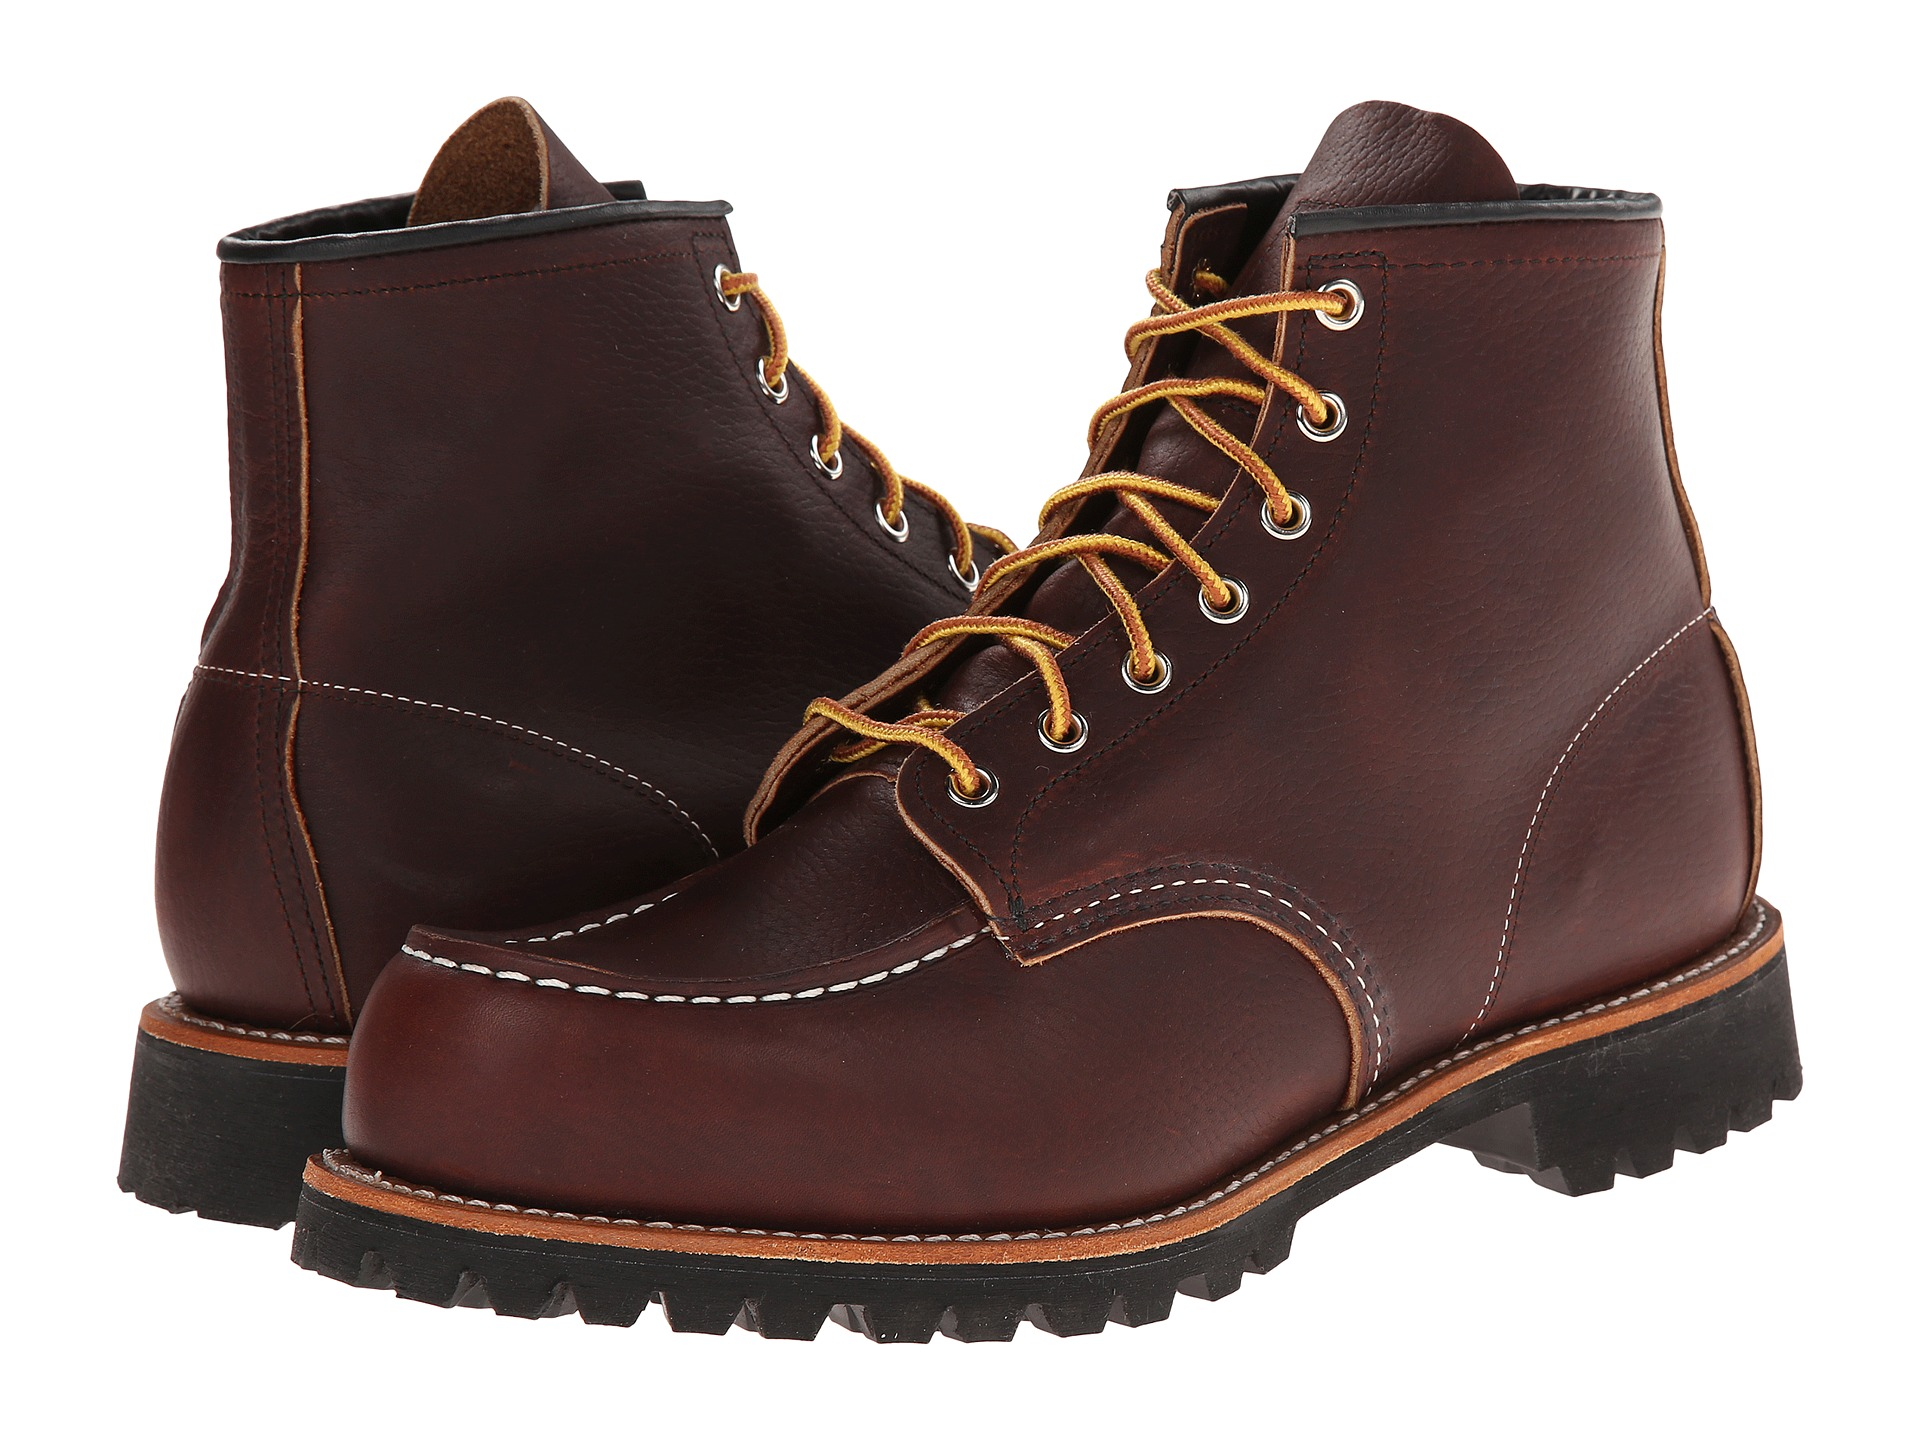 Red Wing Moc Toe Boots Yu Boots